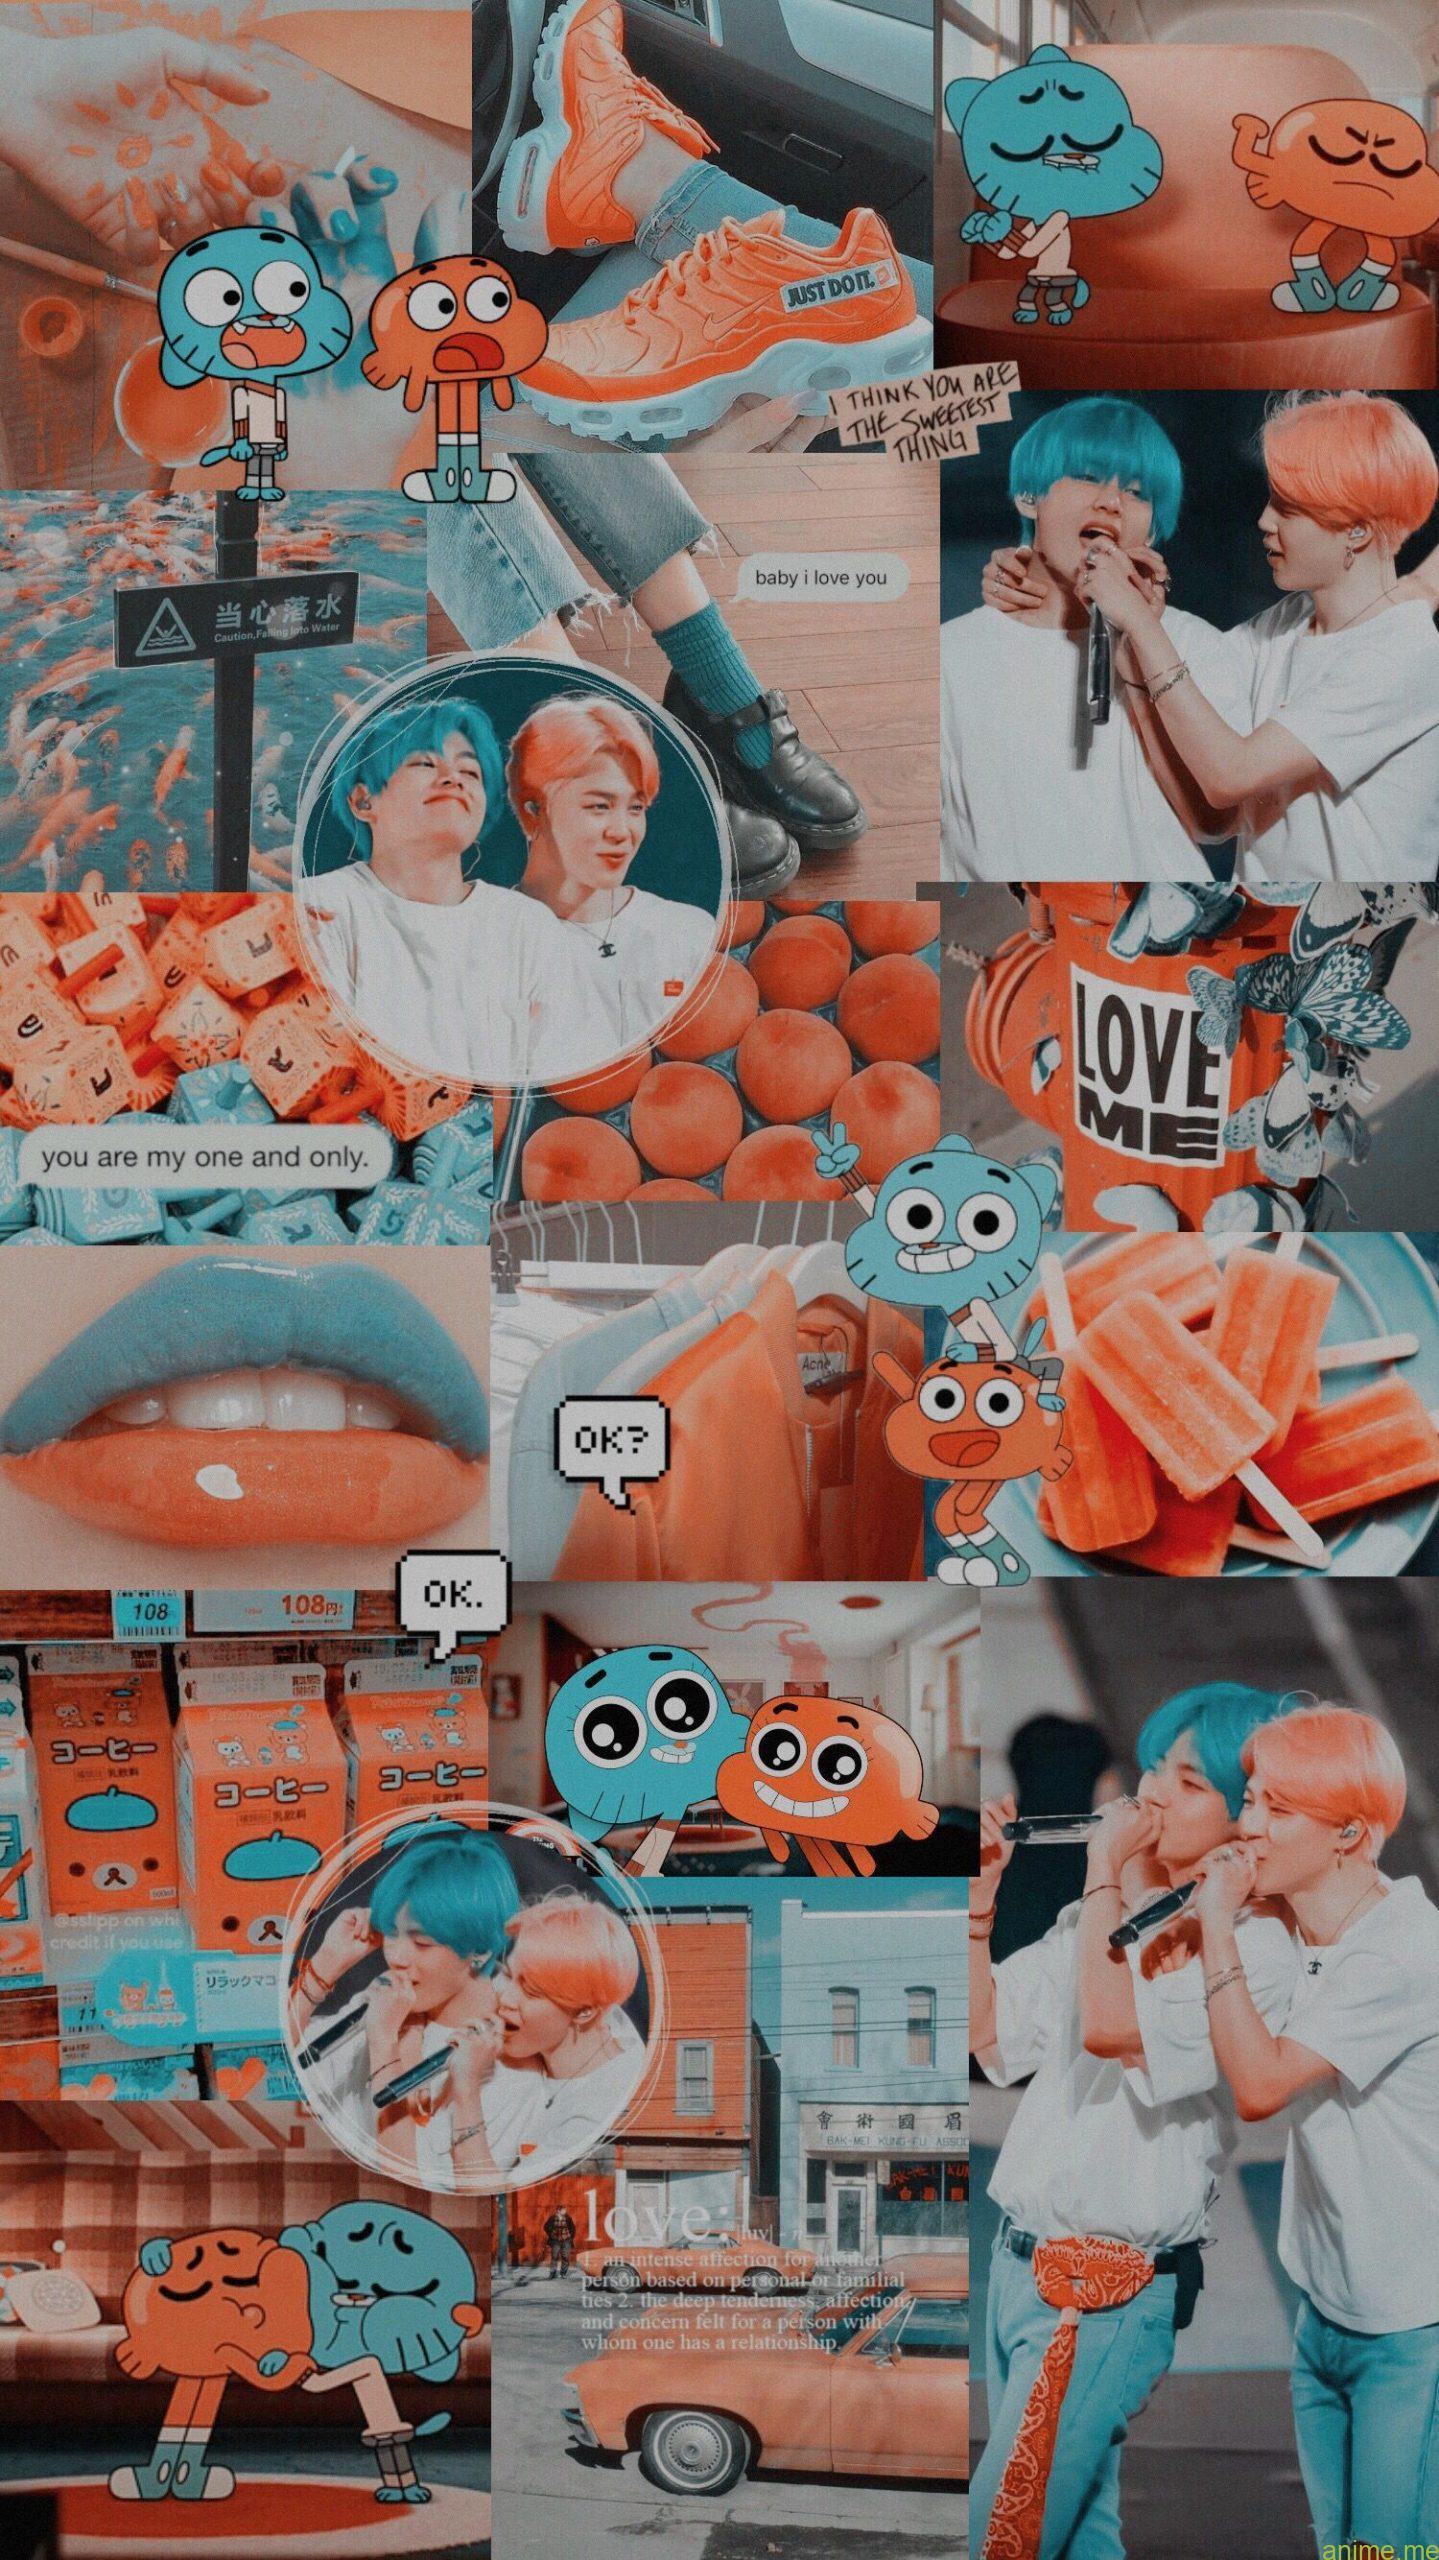 vmin Jimin taehyung v wallpaper bts lockscreen darwin gumball aesthetic scaled